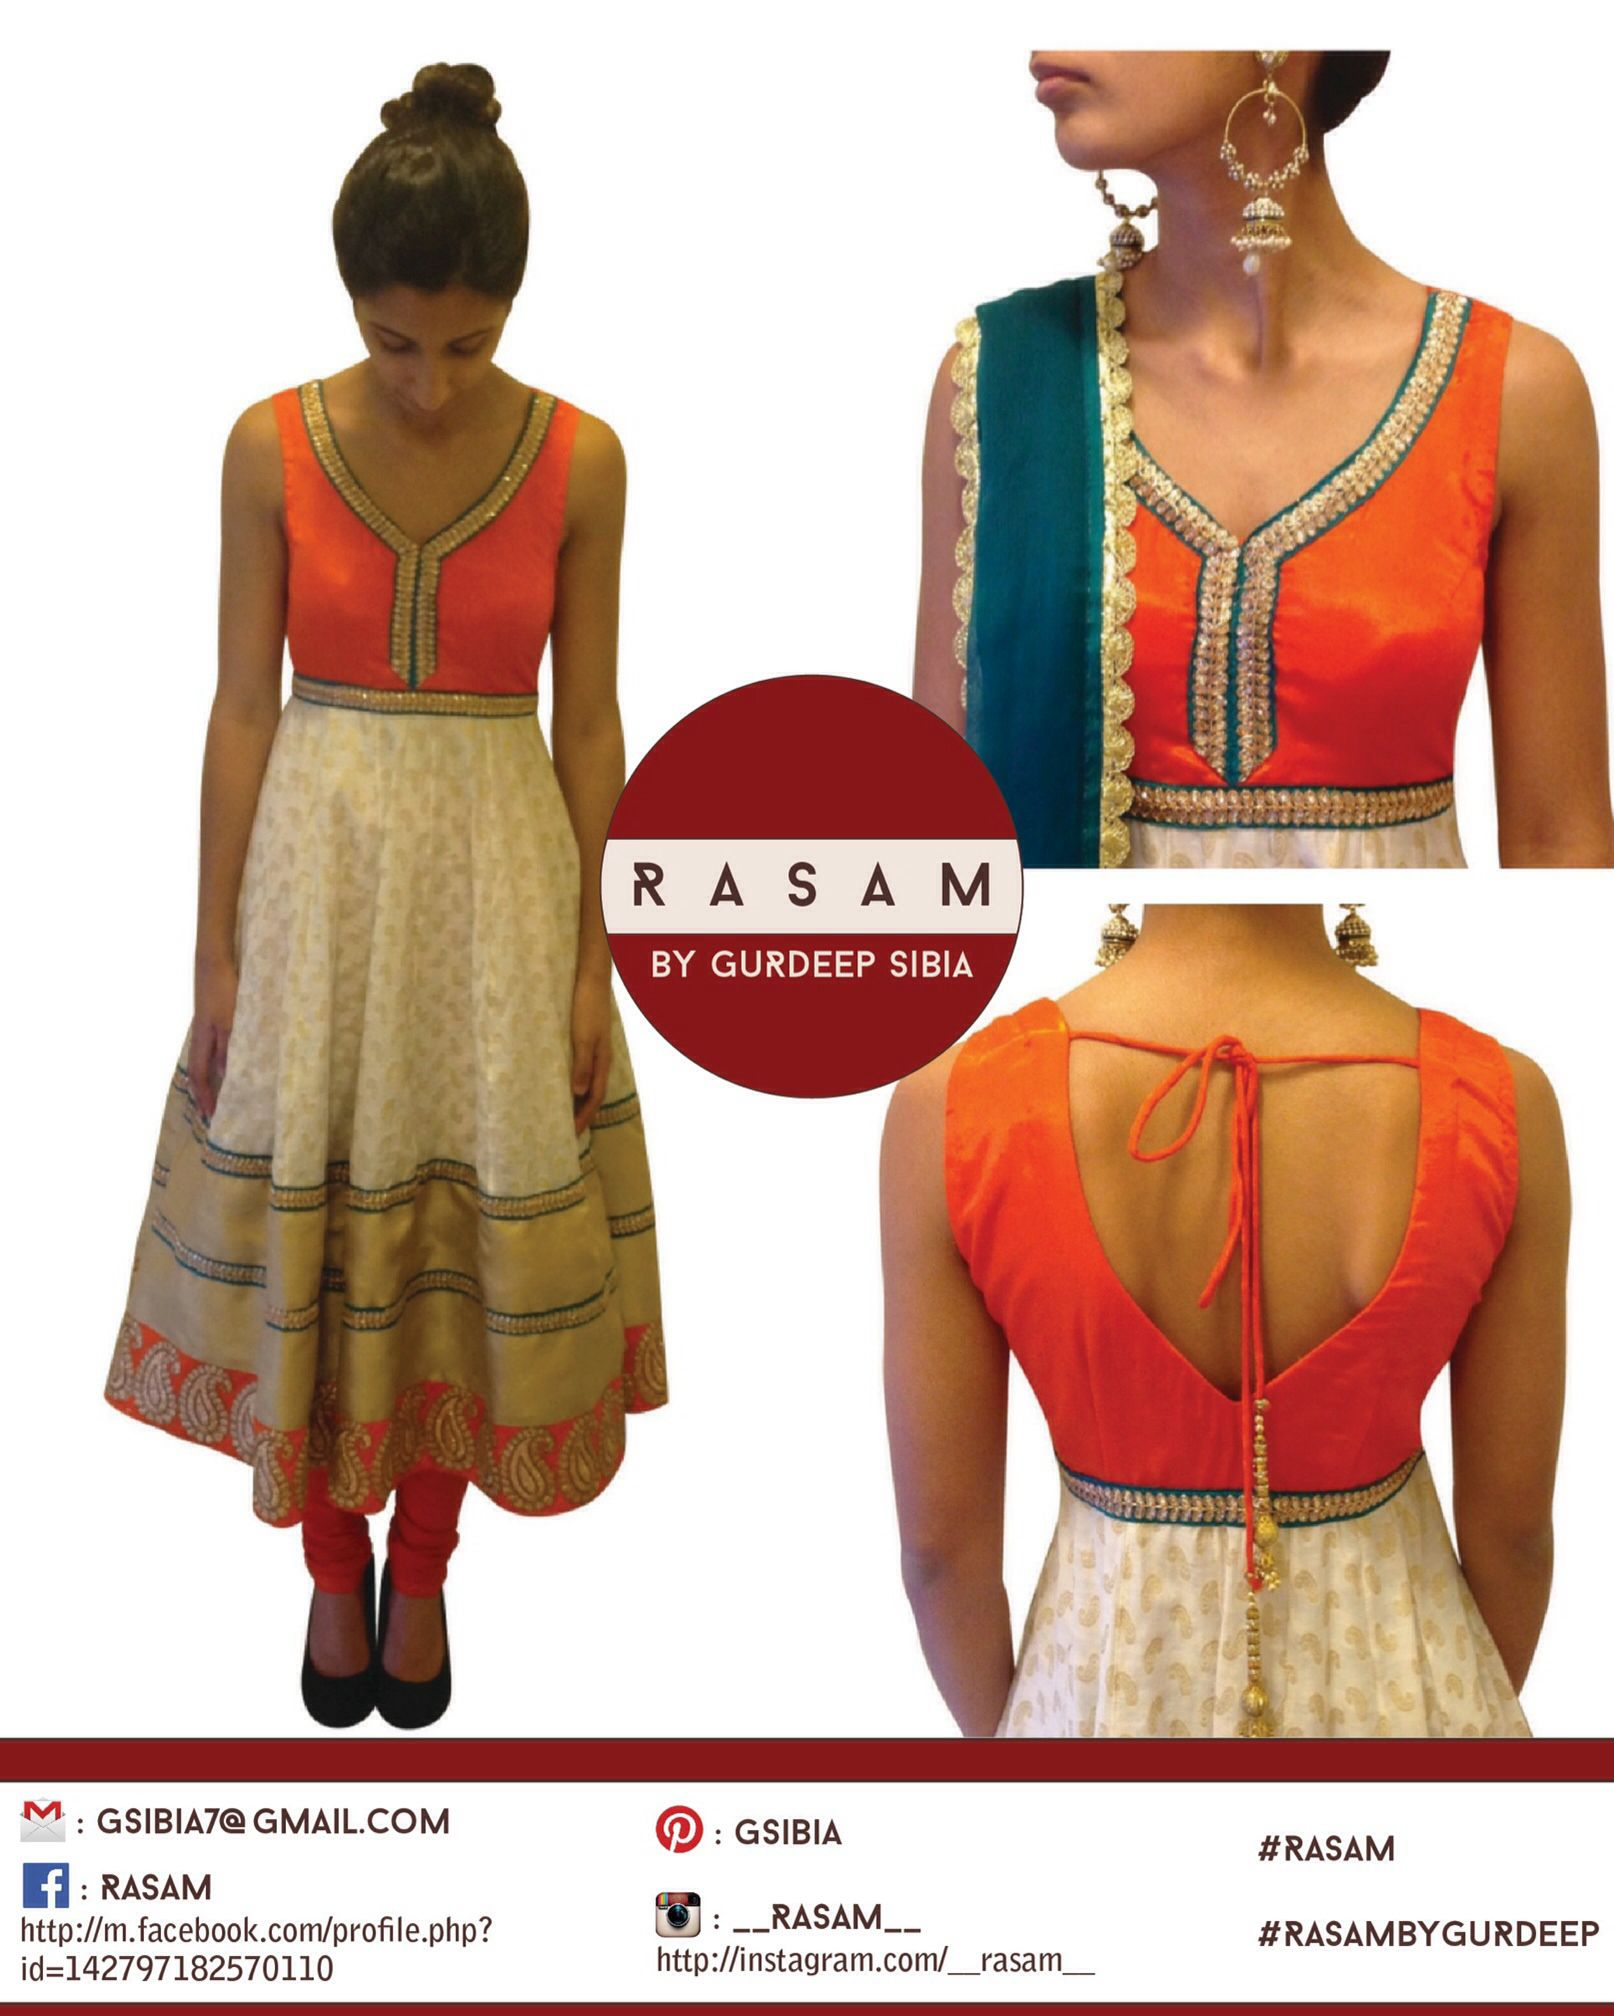 My Name Is Gurdeep Sibia I Am An Up And Coming Indian Fashion Designer From Vancouver Canada I Am A For Indian Fashion Designers Indian Outfits Desi Fashion